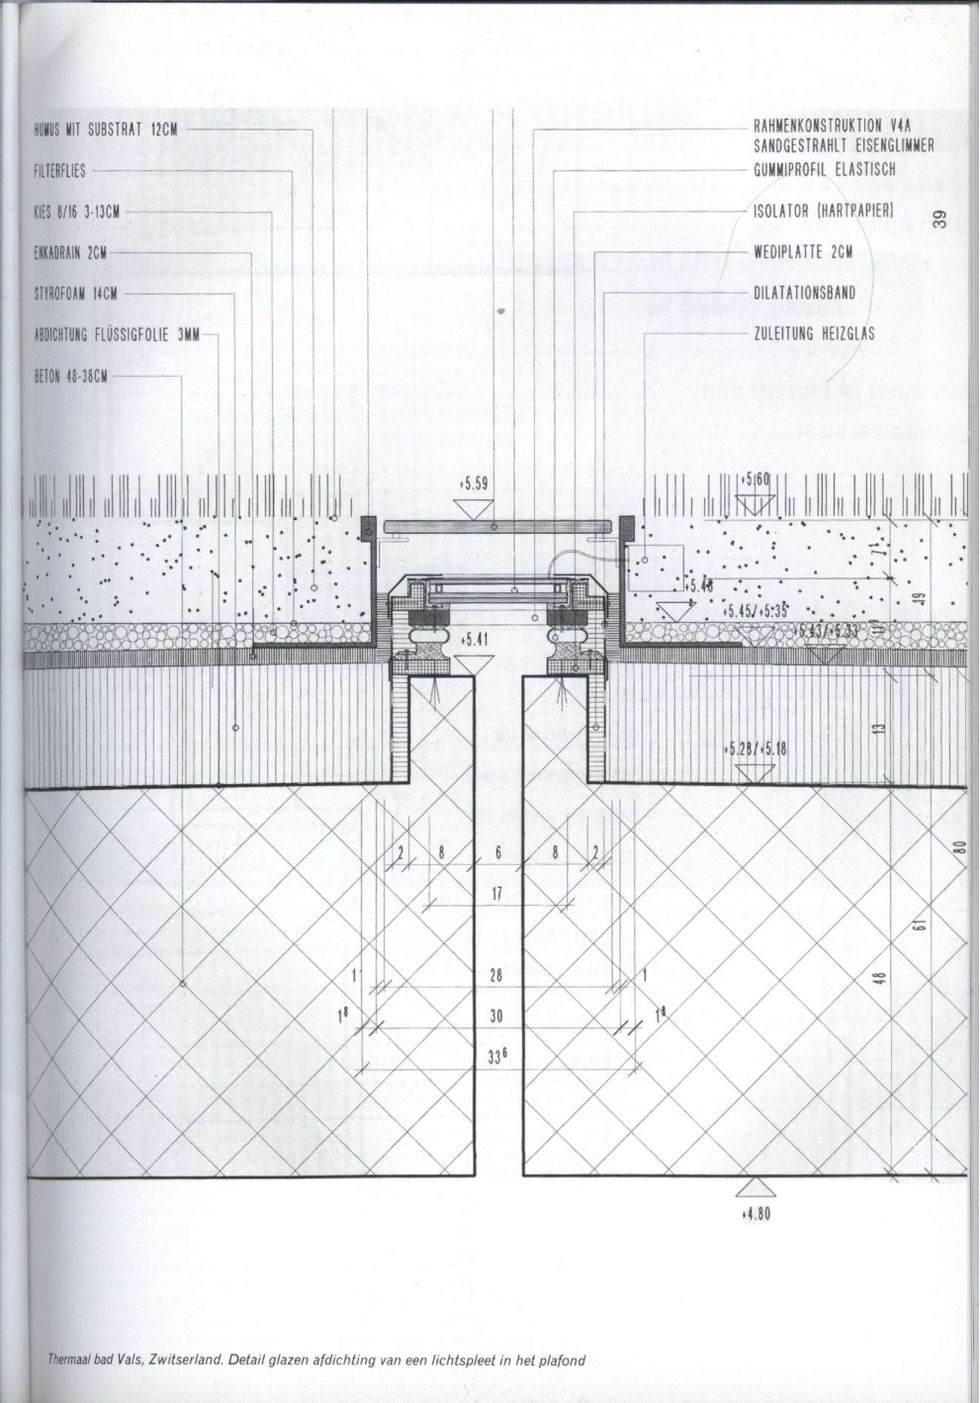 Pin By Jack Eure On Details Expansion Joint Drawings